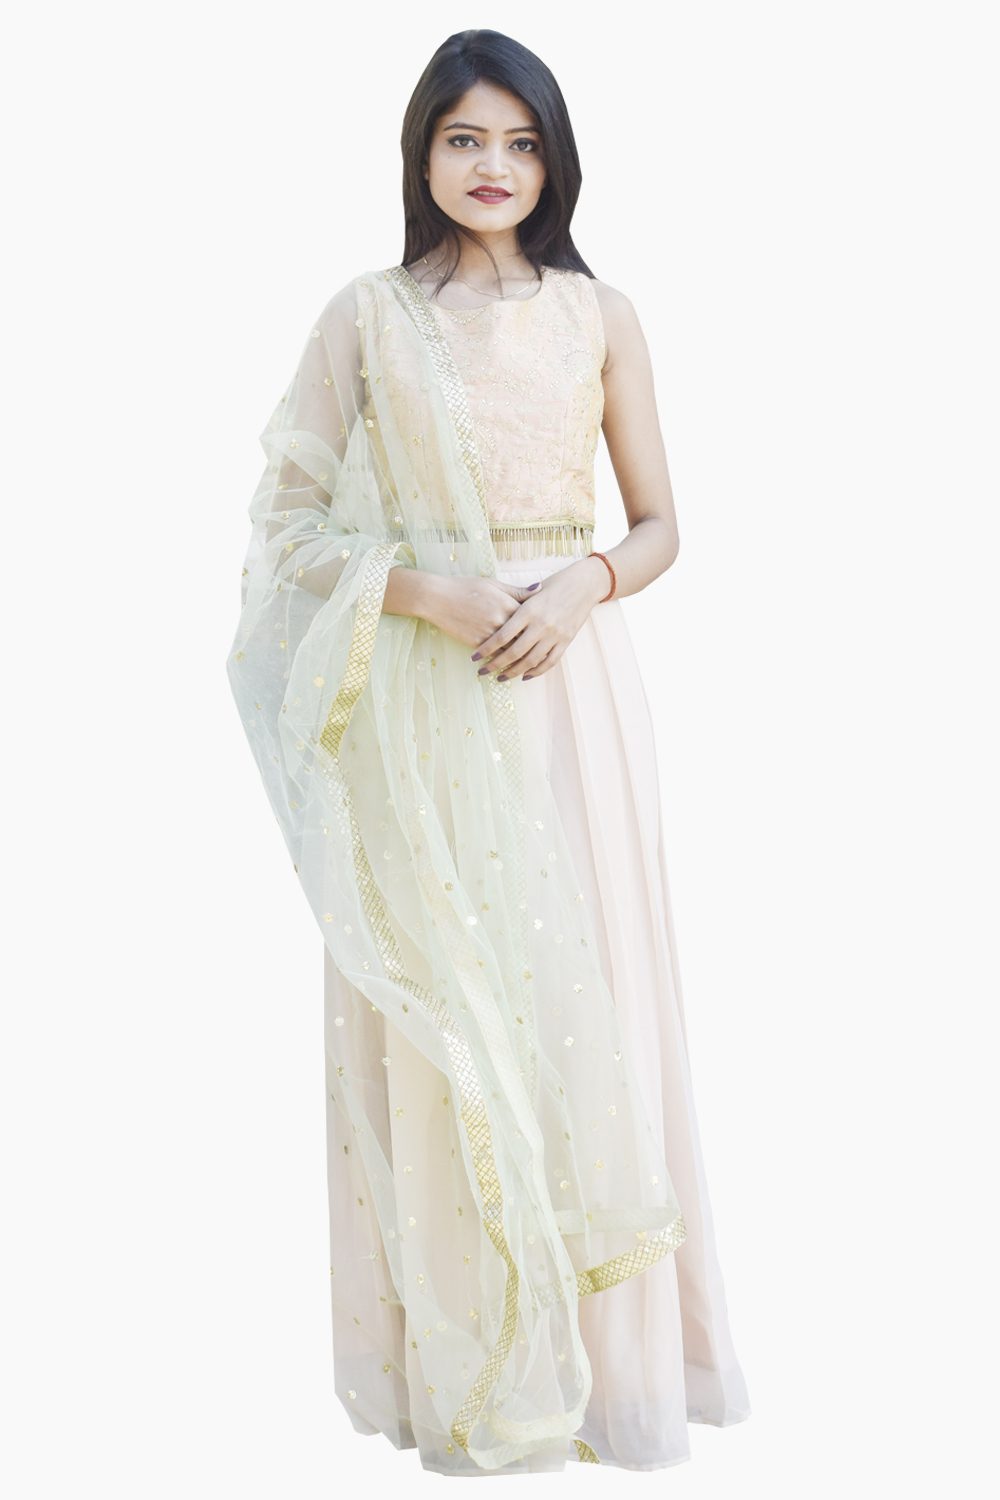 Isabella Crop Top and Skirt with Dupatta